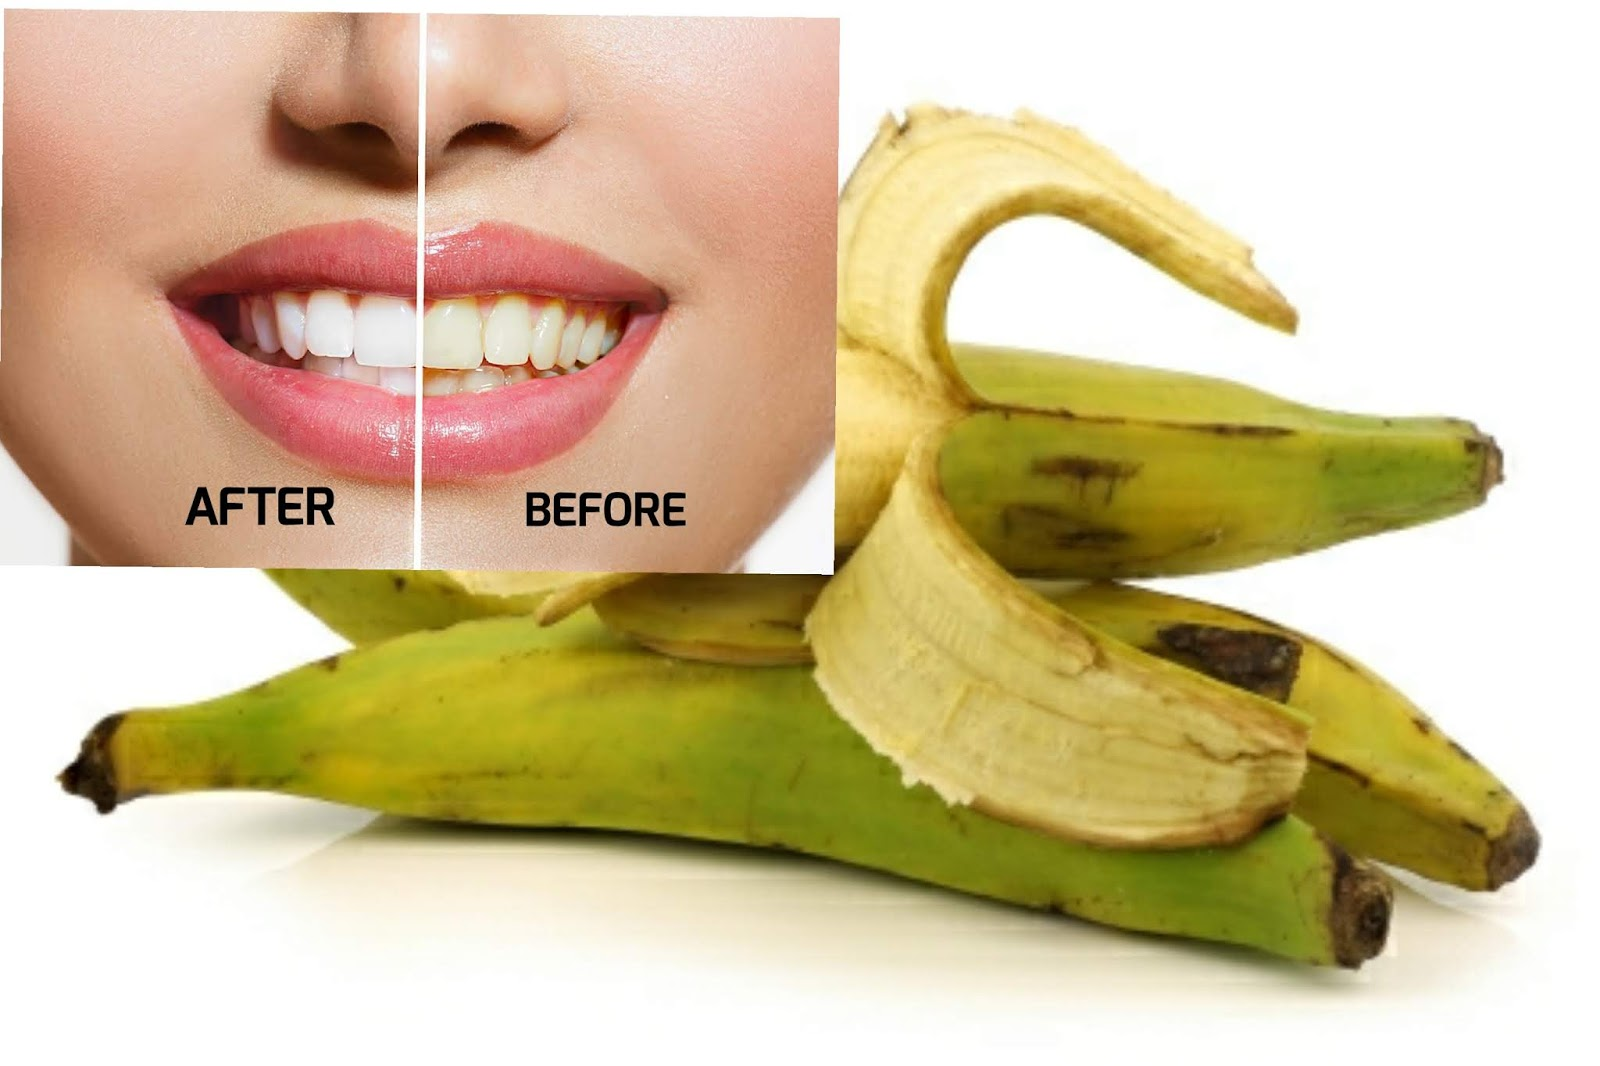 How To Whiten Teeth With Plantain Peels